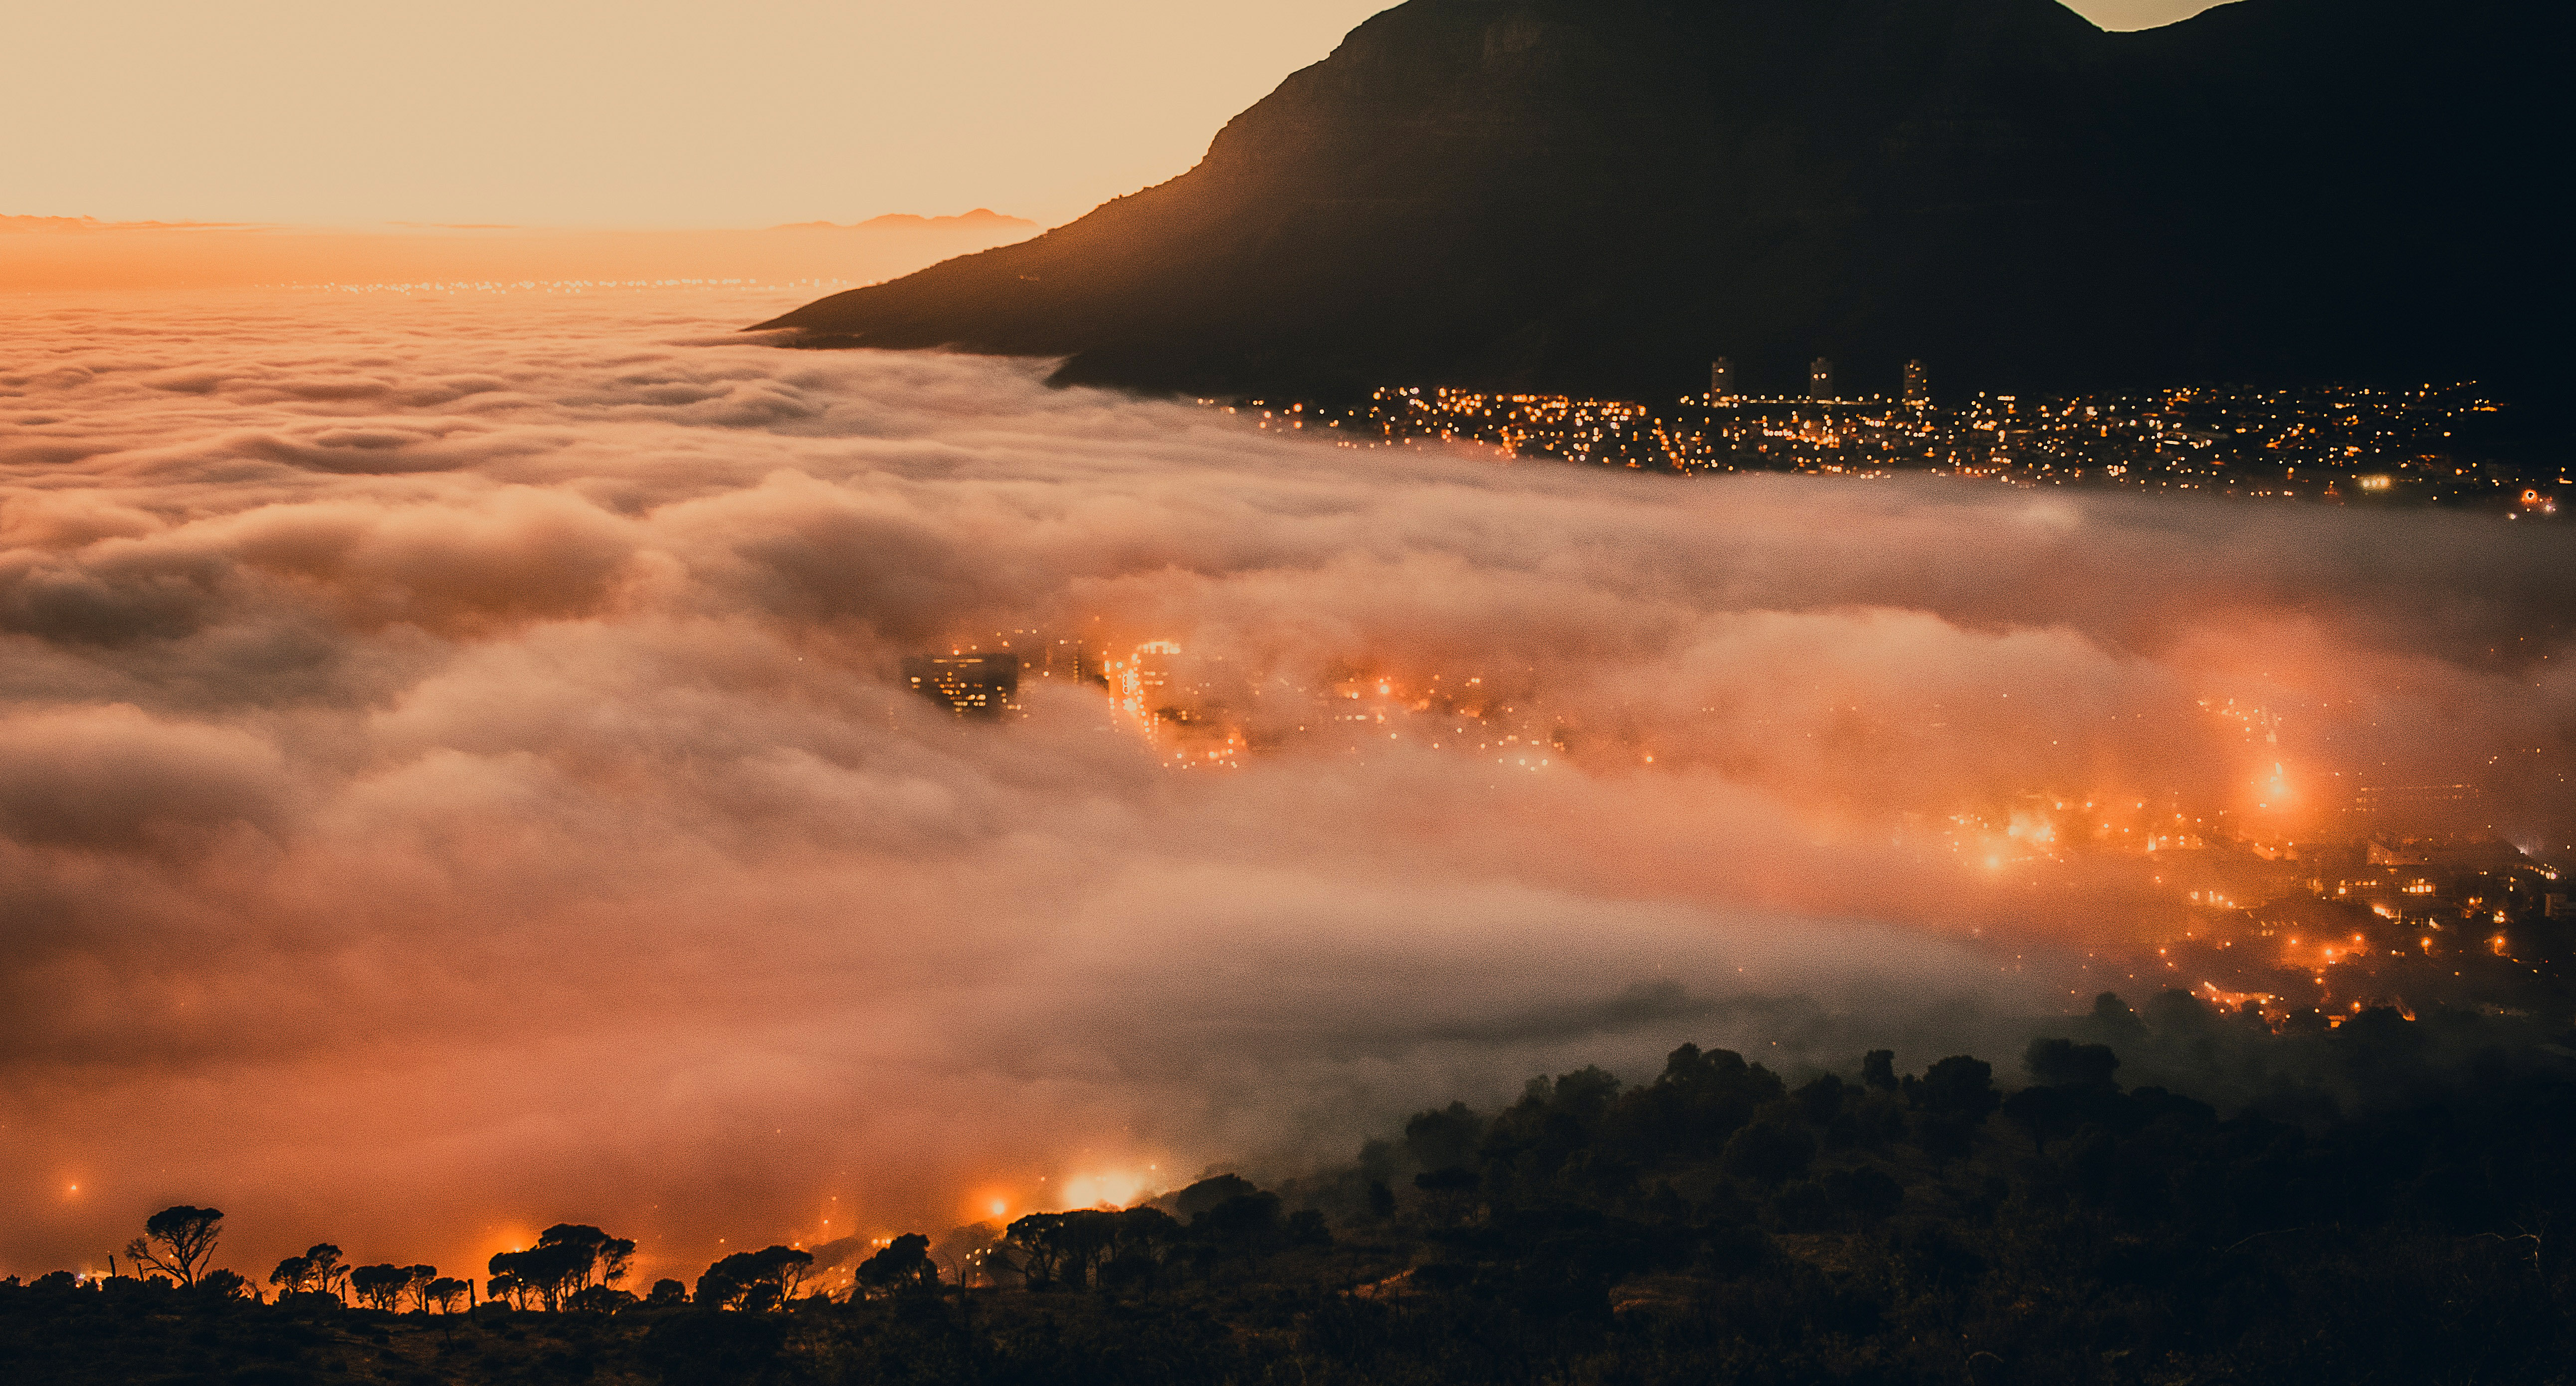 City Shrouded By Clouds In Cape Town South Africa Image